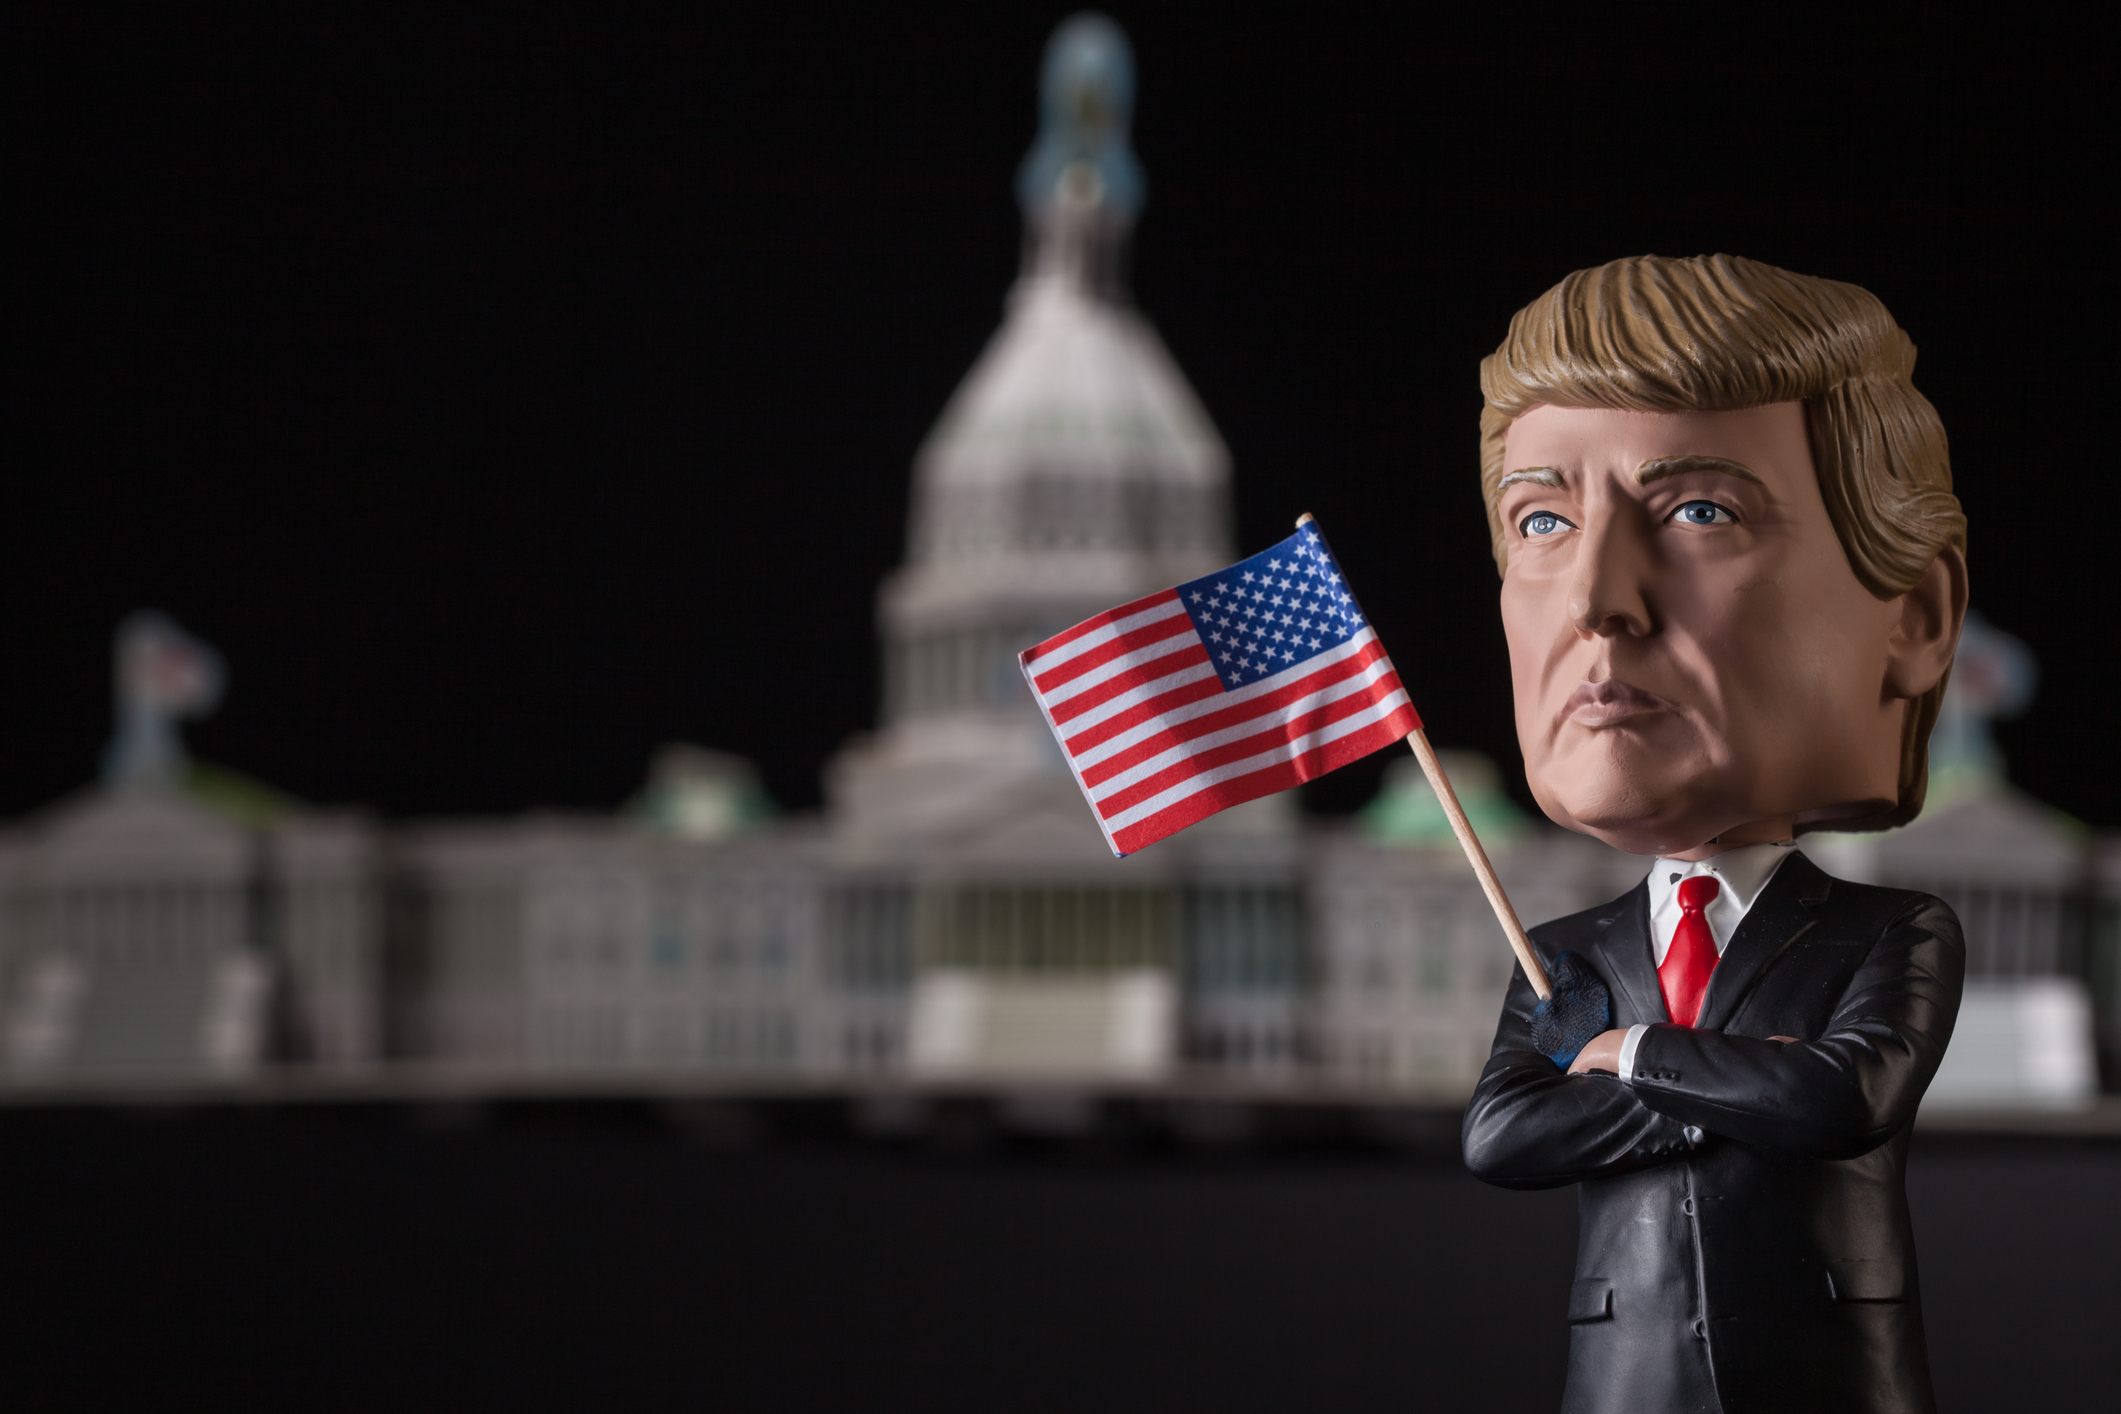 Lexington, KY, USA - November 8, 2016: Republican Donald Trump, as depicted by this lifelike bobblehead doll, won the 2016 American presidential election against Democratic candidate Hillary Clinton.  This realistic figure became popular prior to the 2016 presidential election and is one of several dolls marketed by Royal Bobbles.